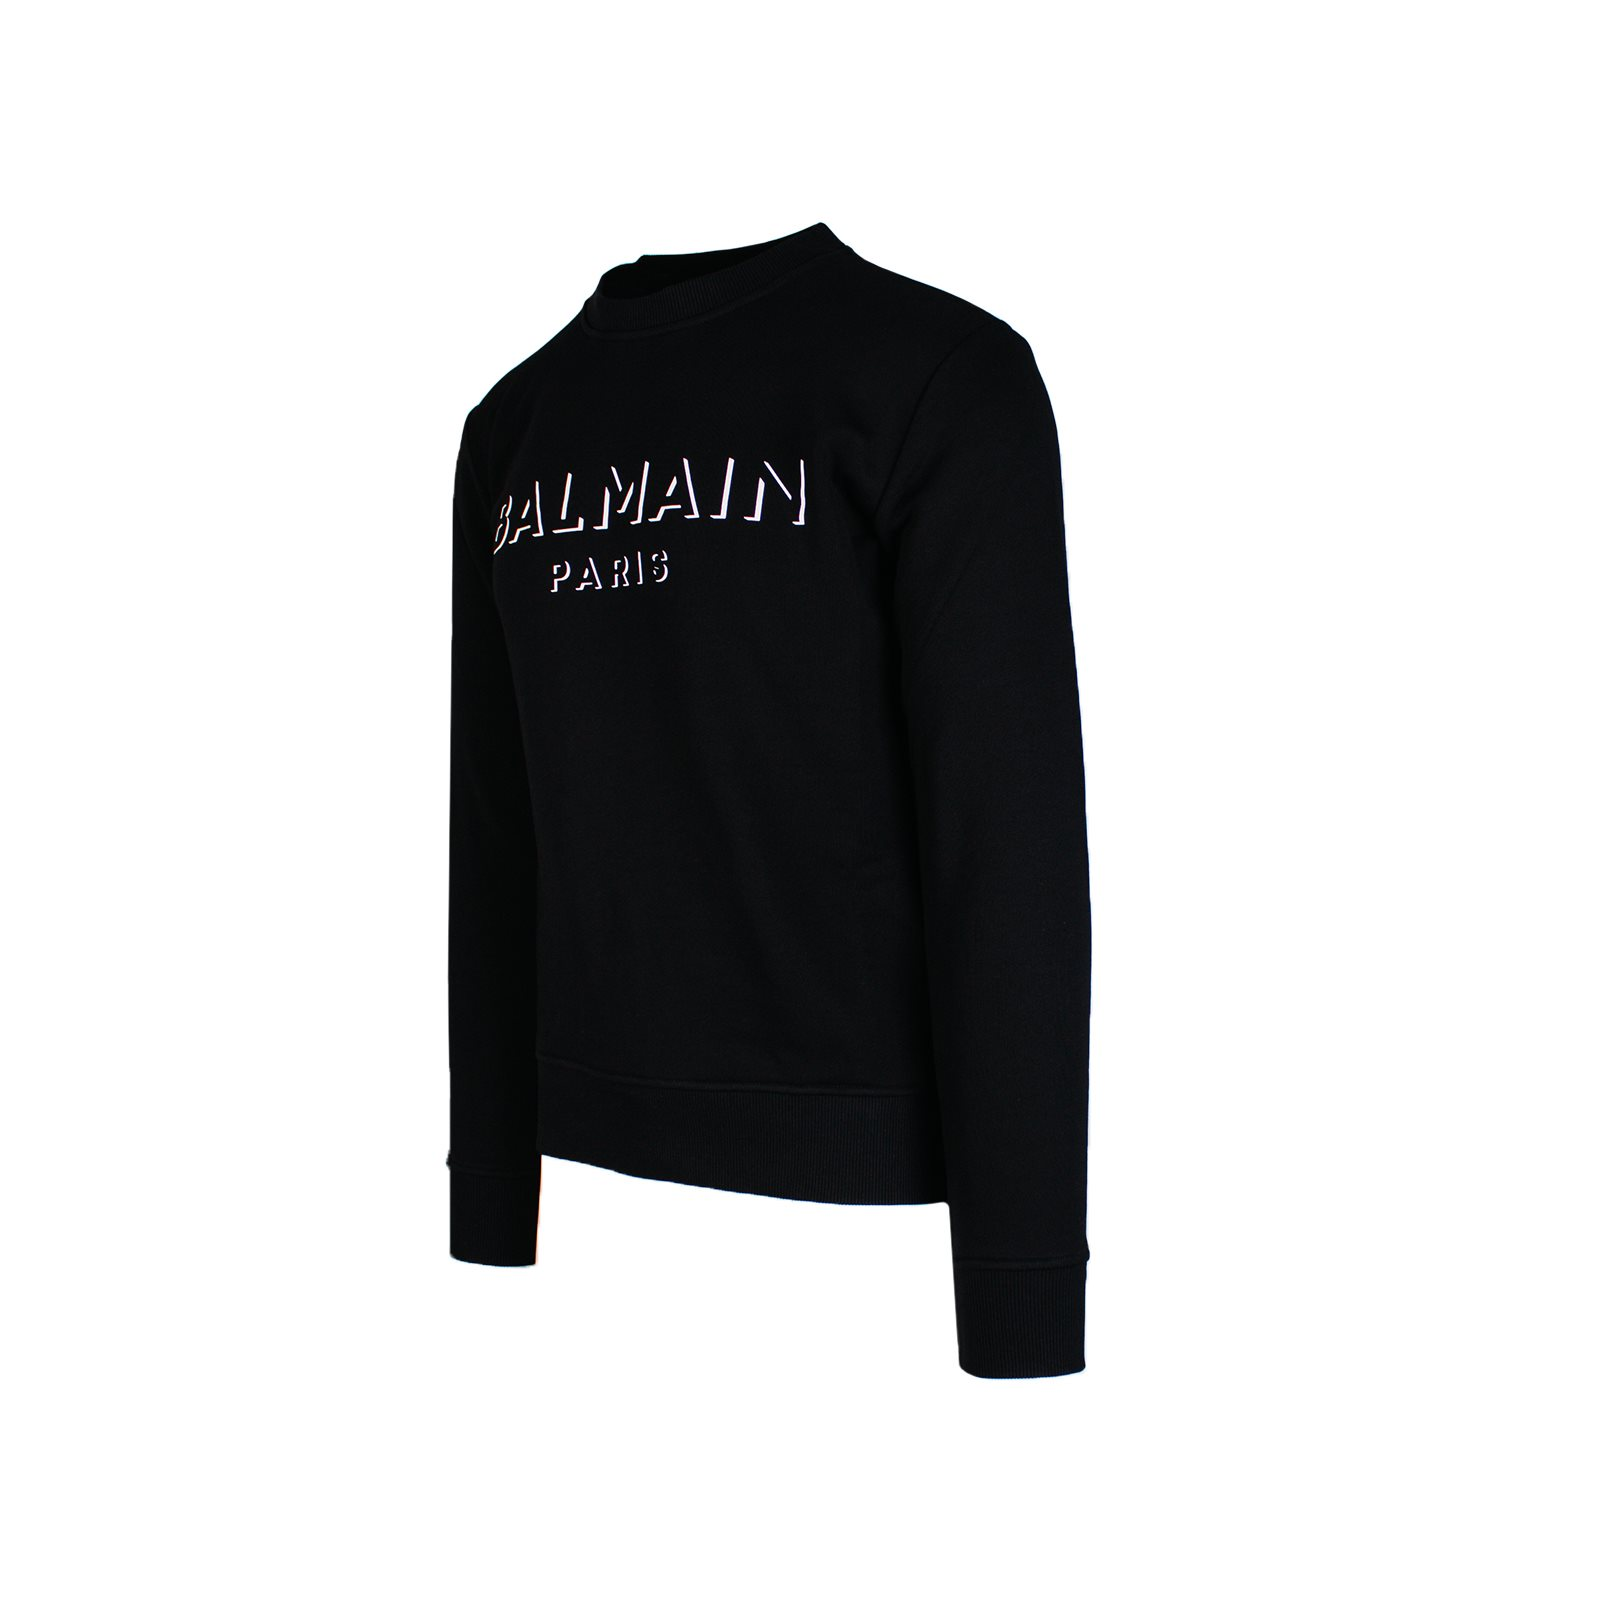 Balmain Paris Sweater 2